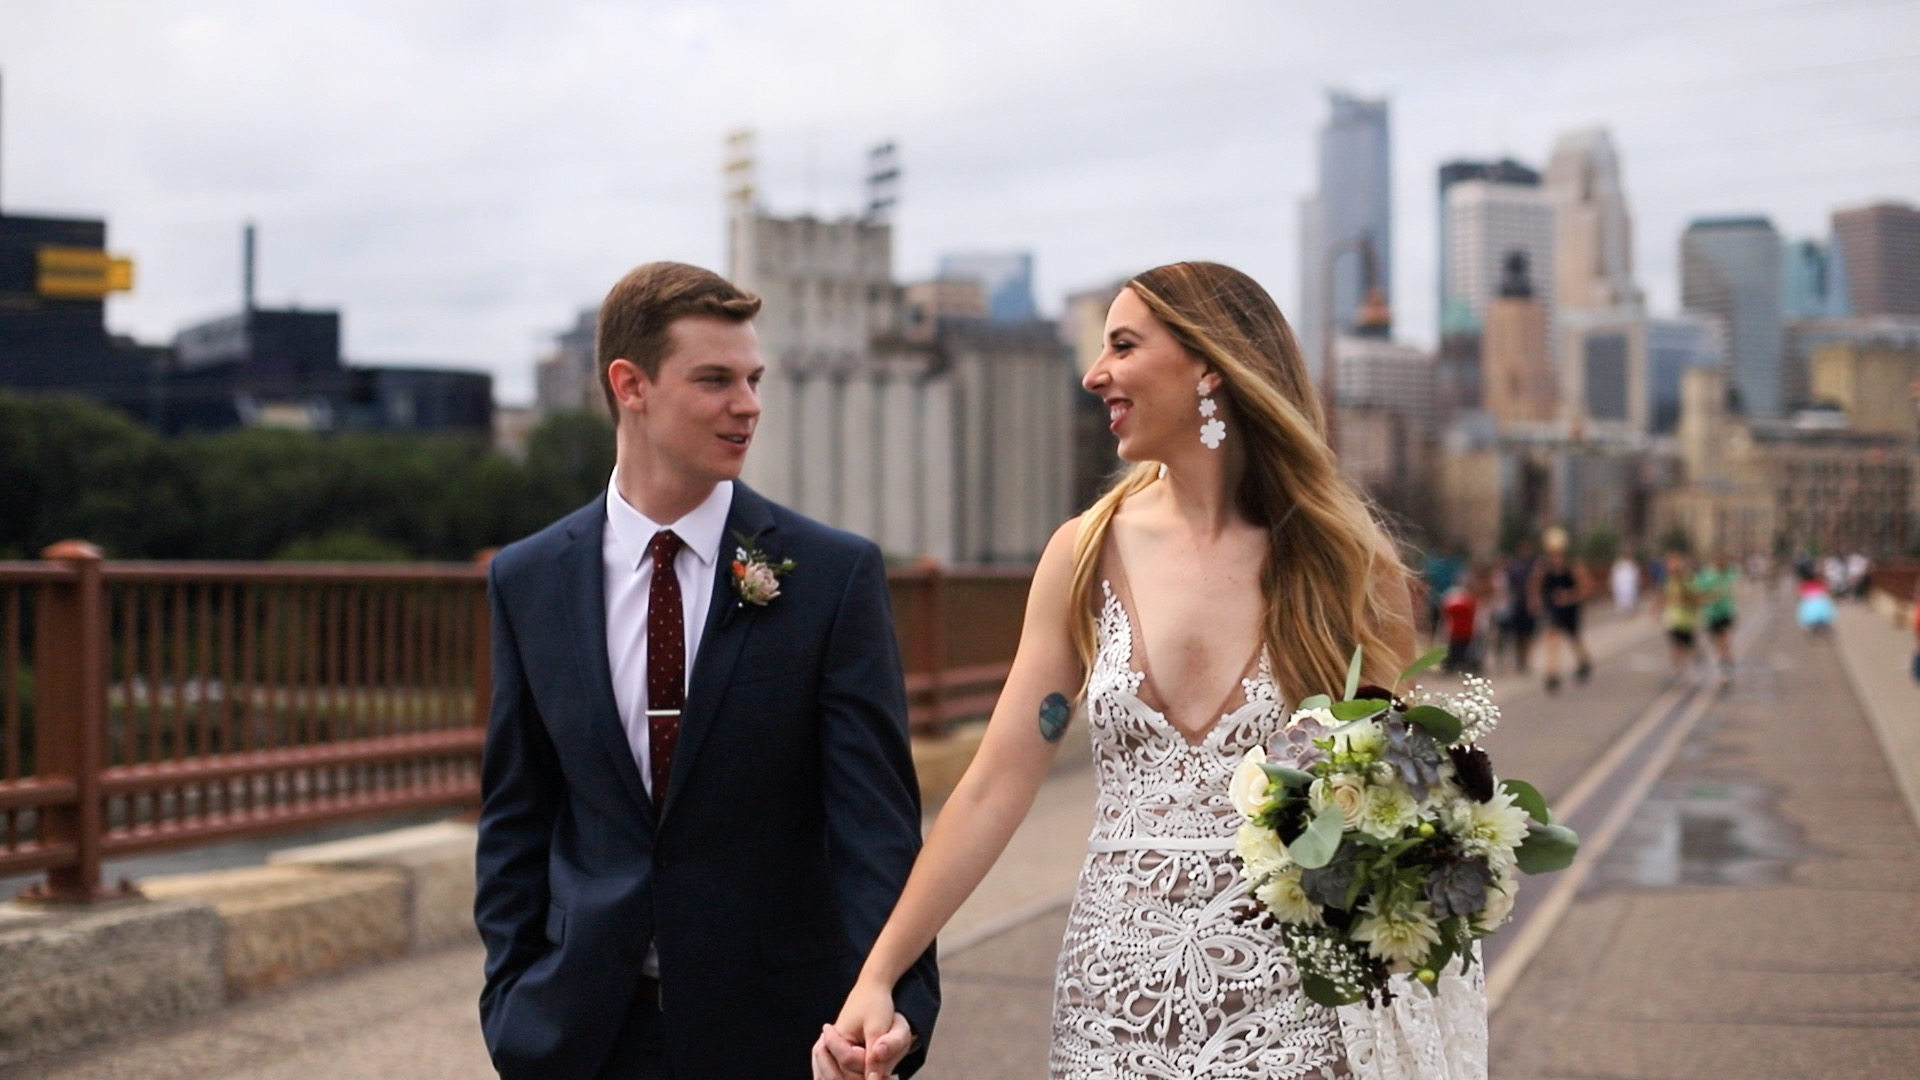 Josh + Taylor | Minneapolis, Minnesota | Minneapolis Event Centers, Minneapolis